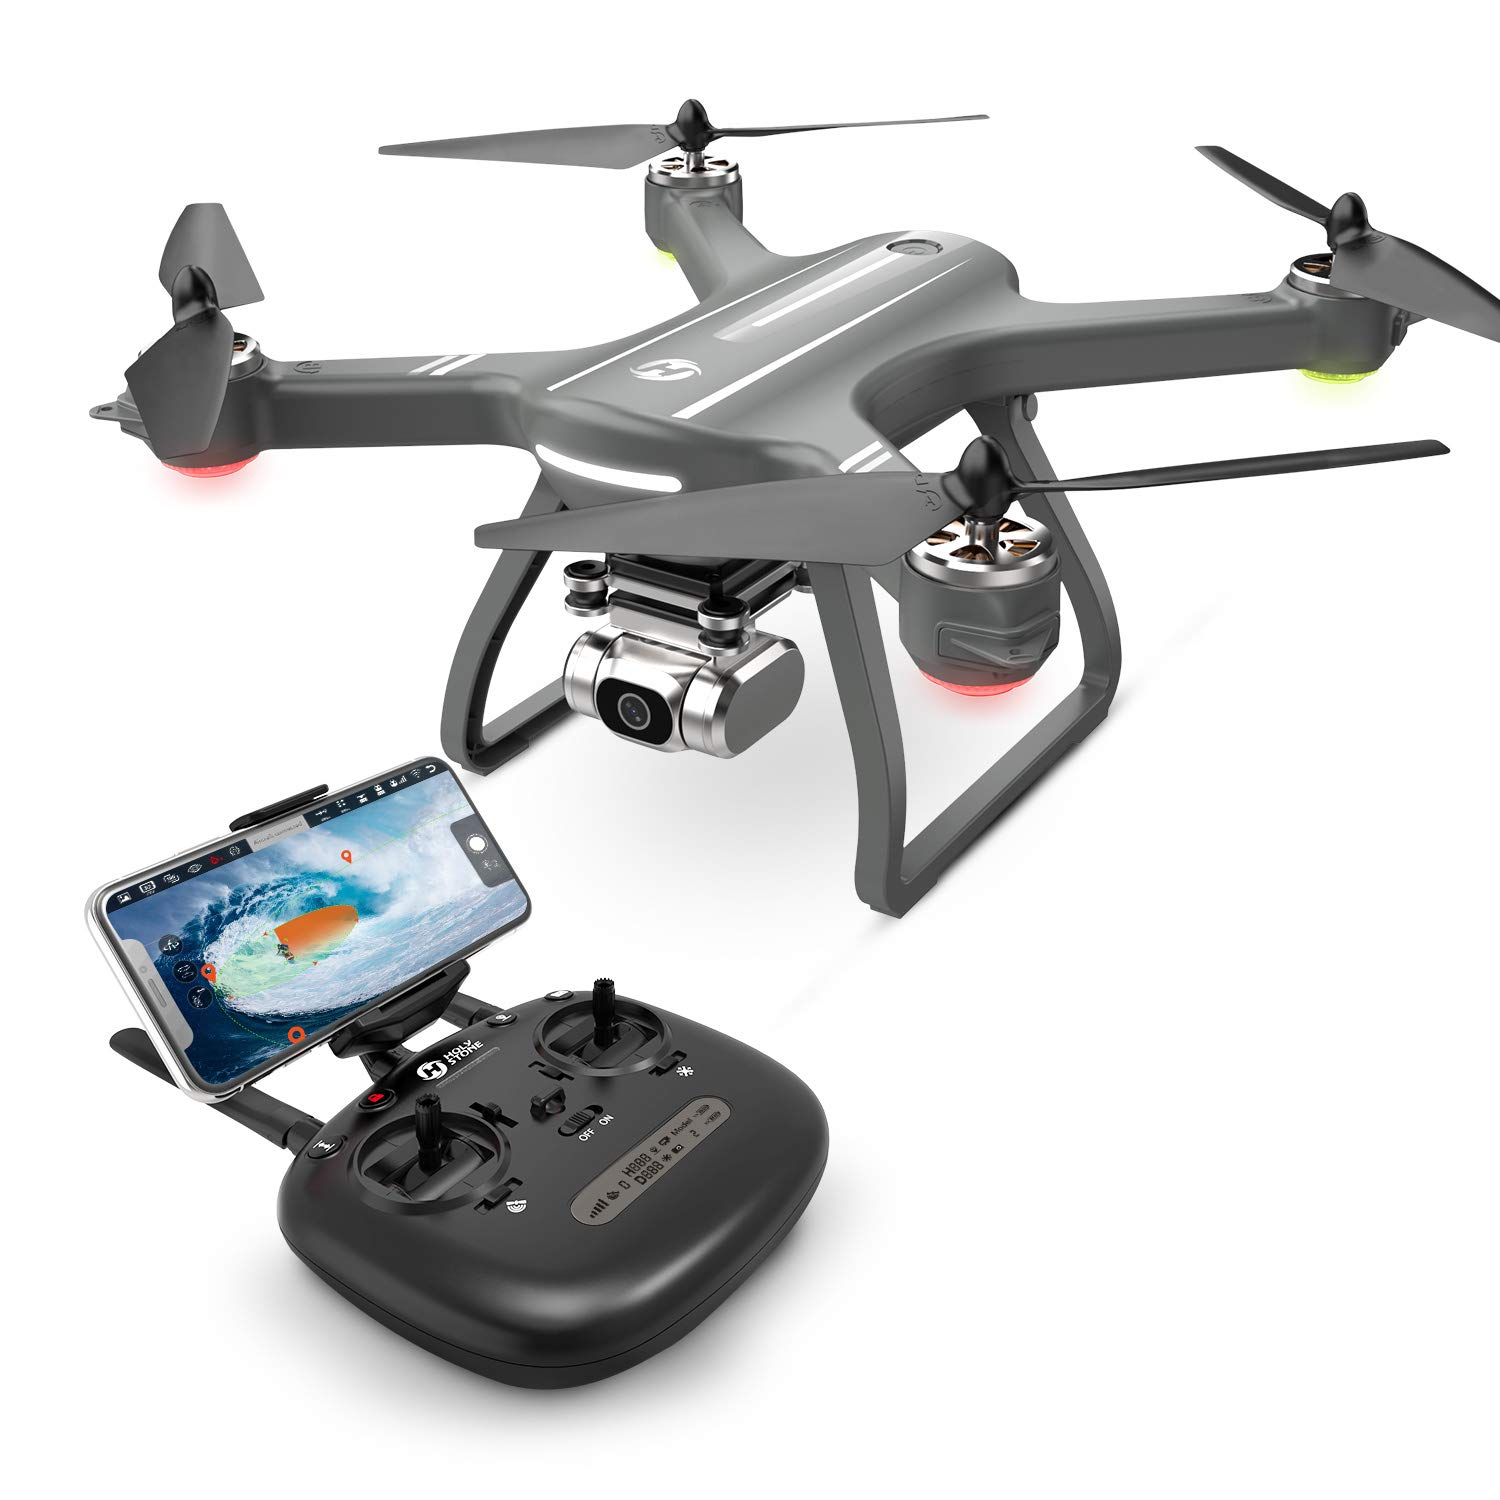 Holy Stone HS700D 2K Drone with FHD Camera FPV Live Video for Adults, GPS RC Quadcopter with Brushless Motor, 5G Transmission, Auto Return Home, Long Flight Time, Advanced Selfie for Beginners, Gray by Holy Stone